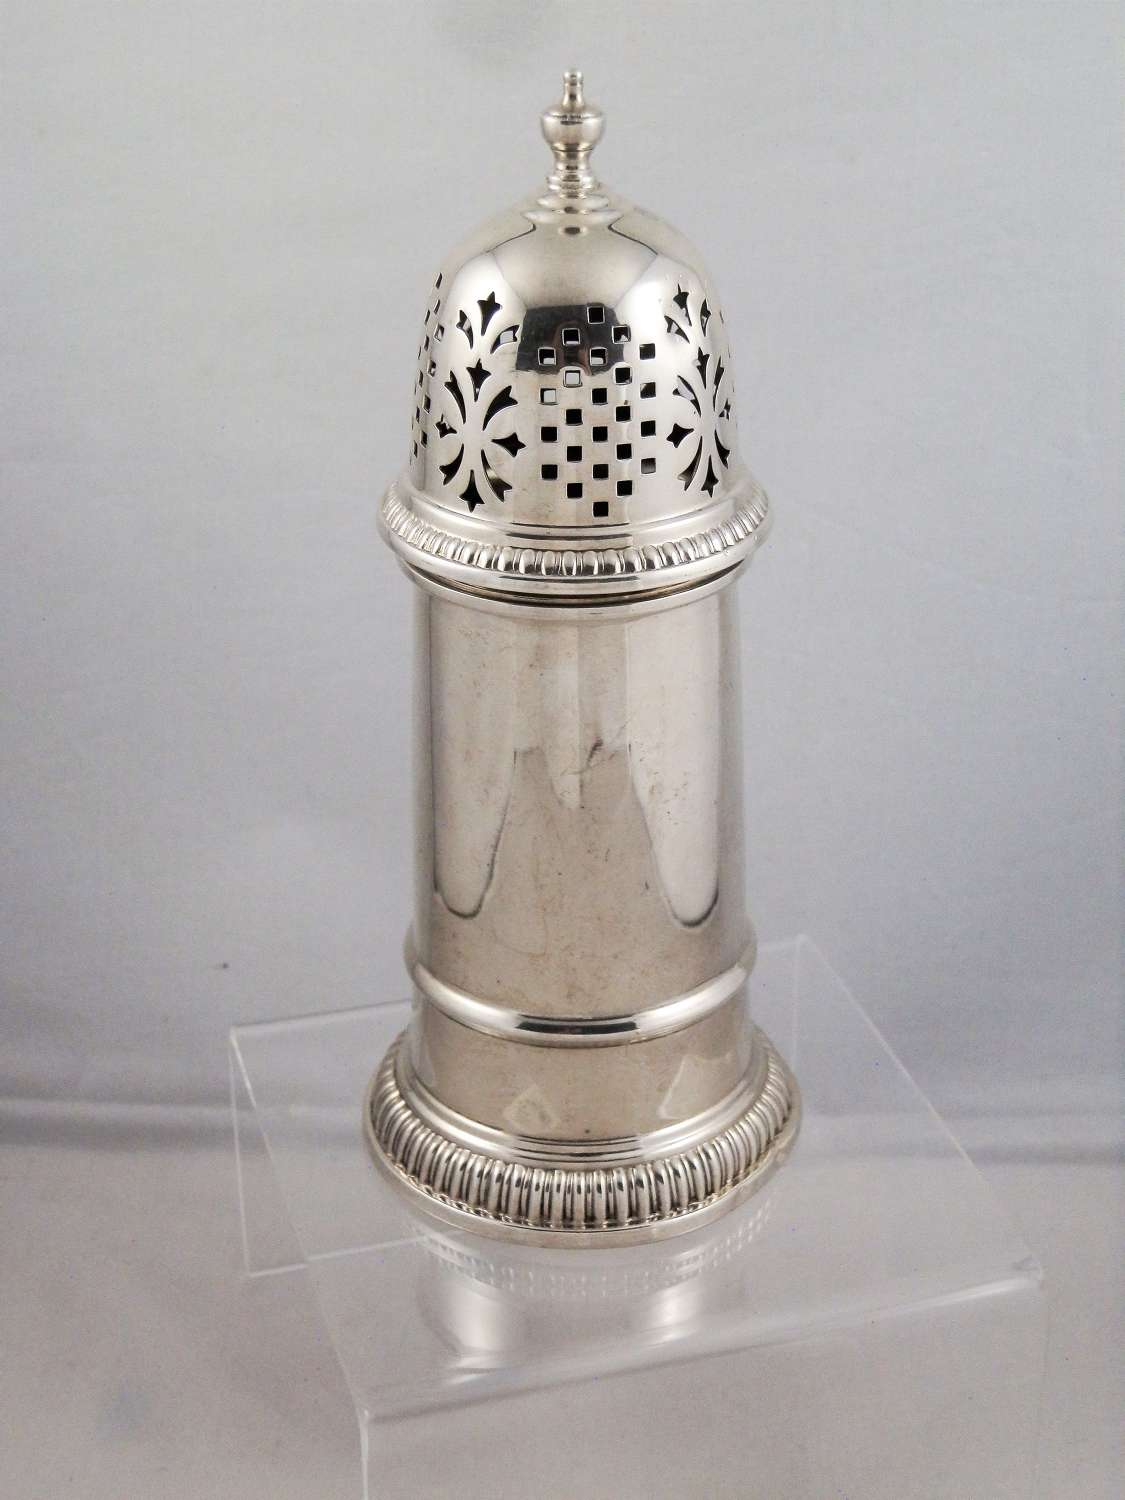 Silver lighthouse style sugar caster, Birm. 1974